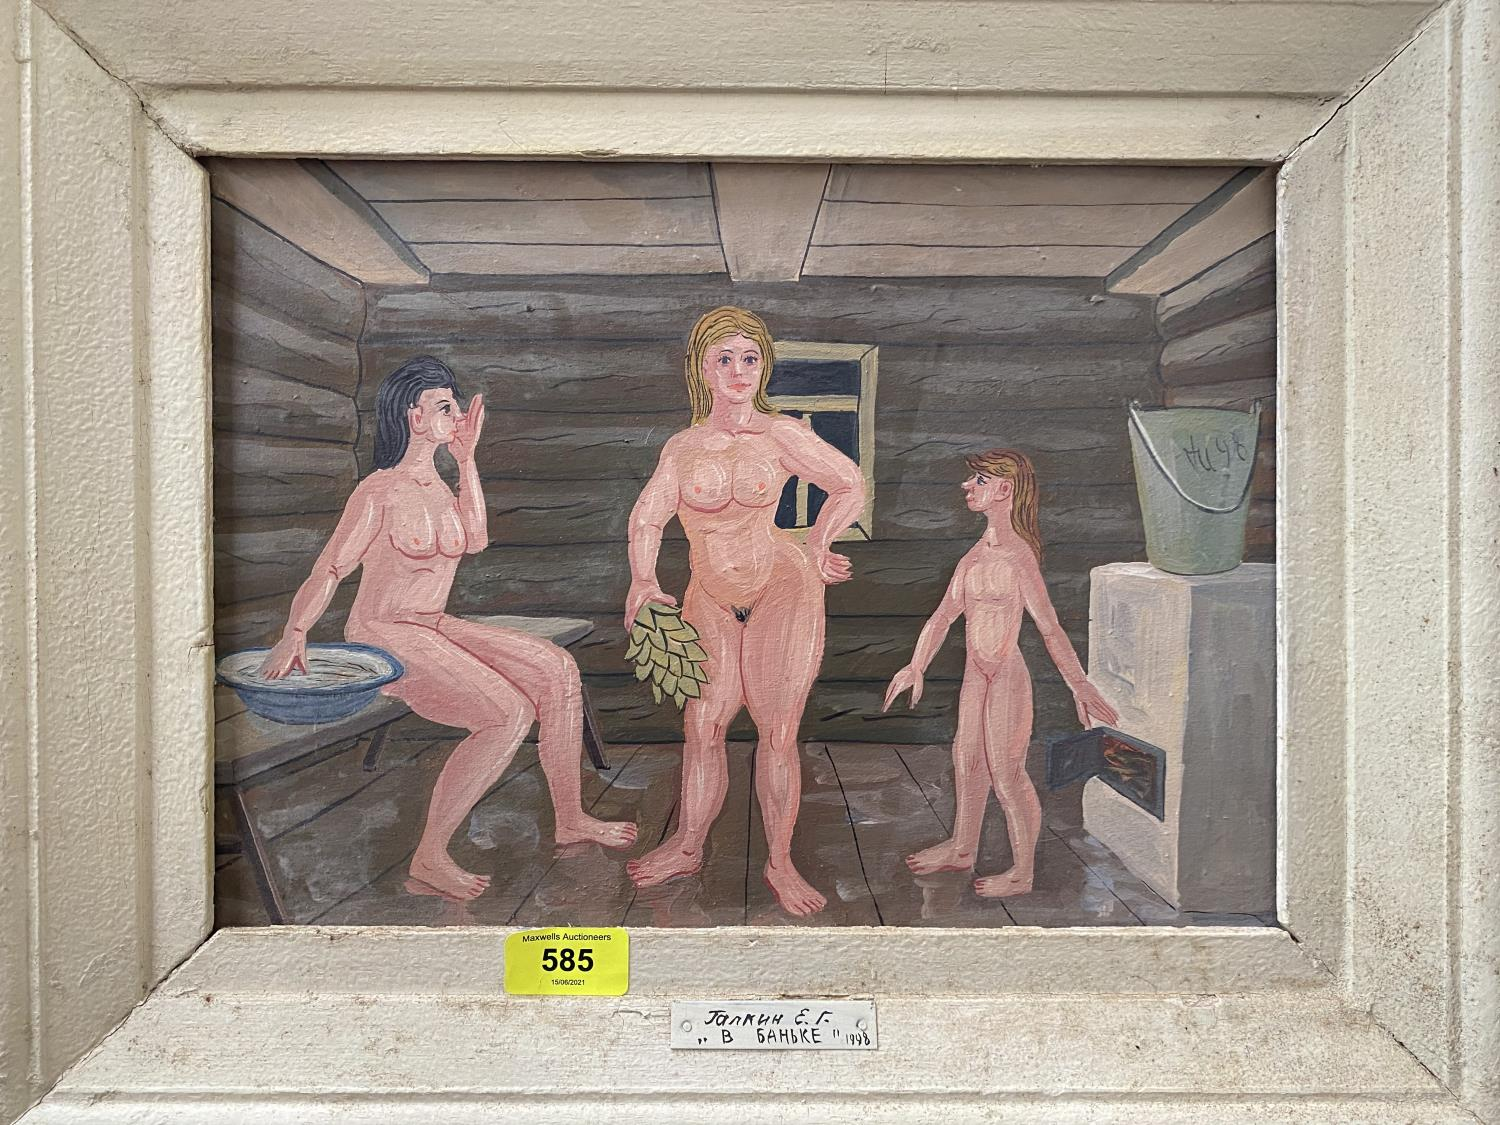 E.G. Galkin - In the Banya (bath house), oil cartoon, oil on canvass & board, inscribed on reverse